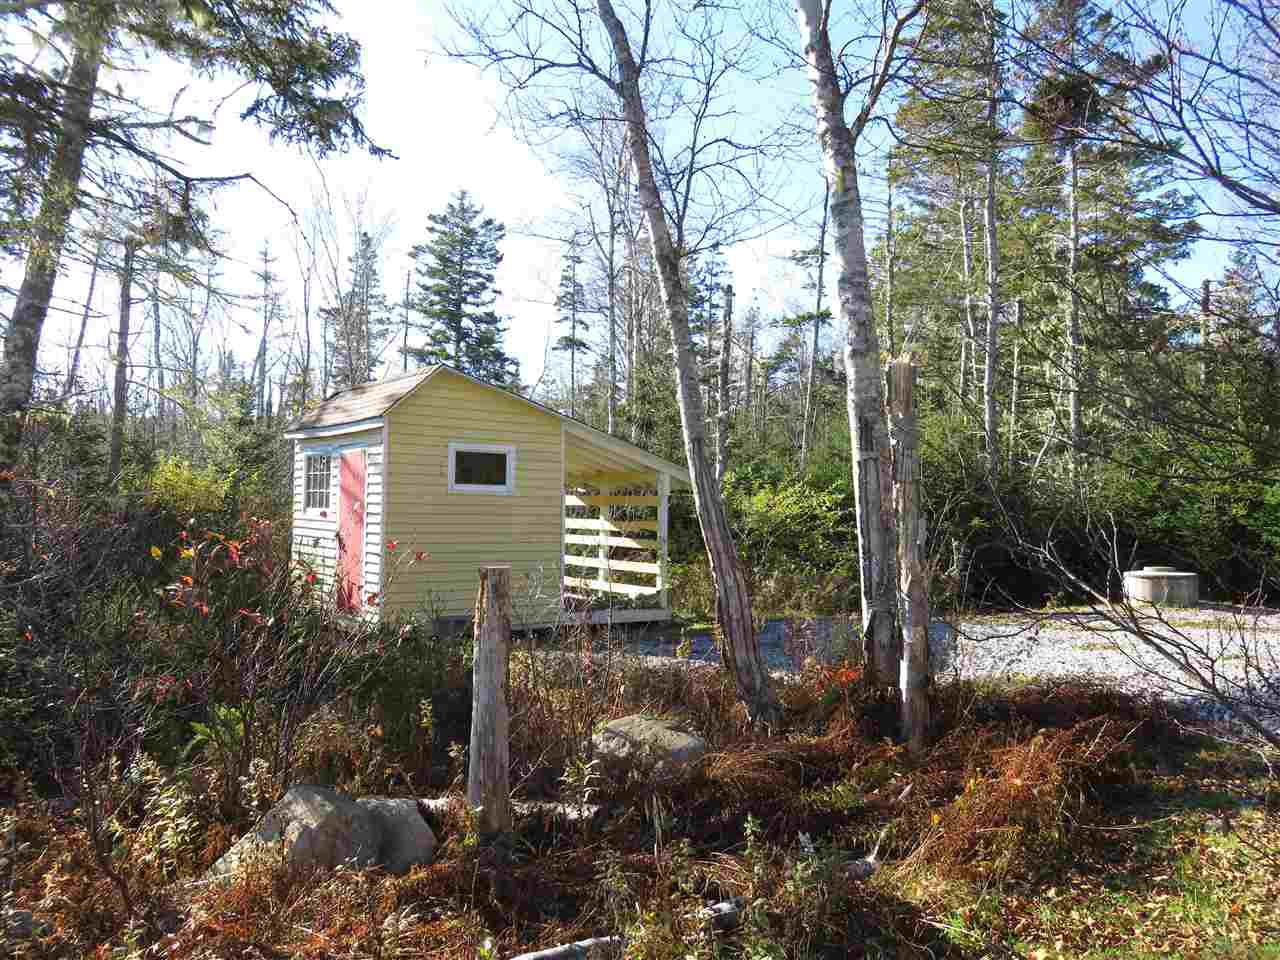 Photo 6: Photos: 783 WEST GREEN HARBOUR Road in West Green Harbour: 407-Shelburne County Residential for sale (South Shore)  : MLS®# 201701314